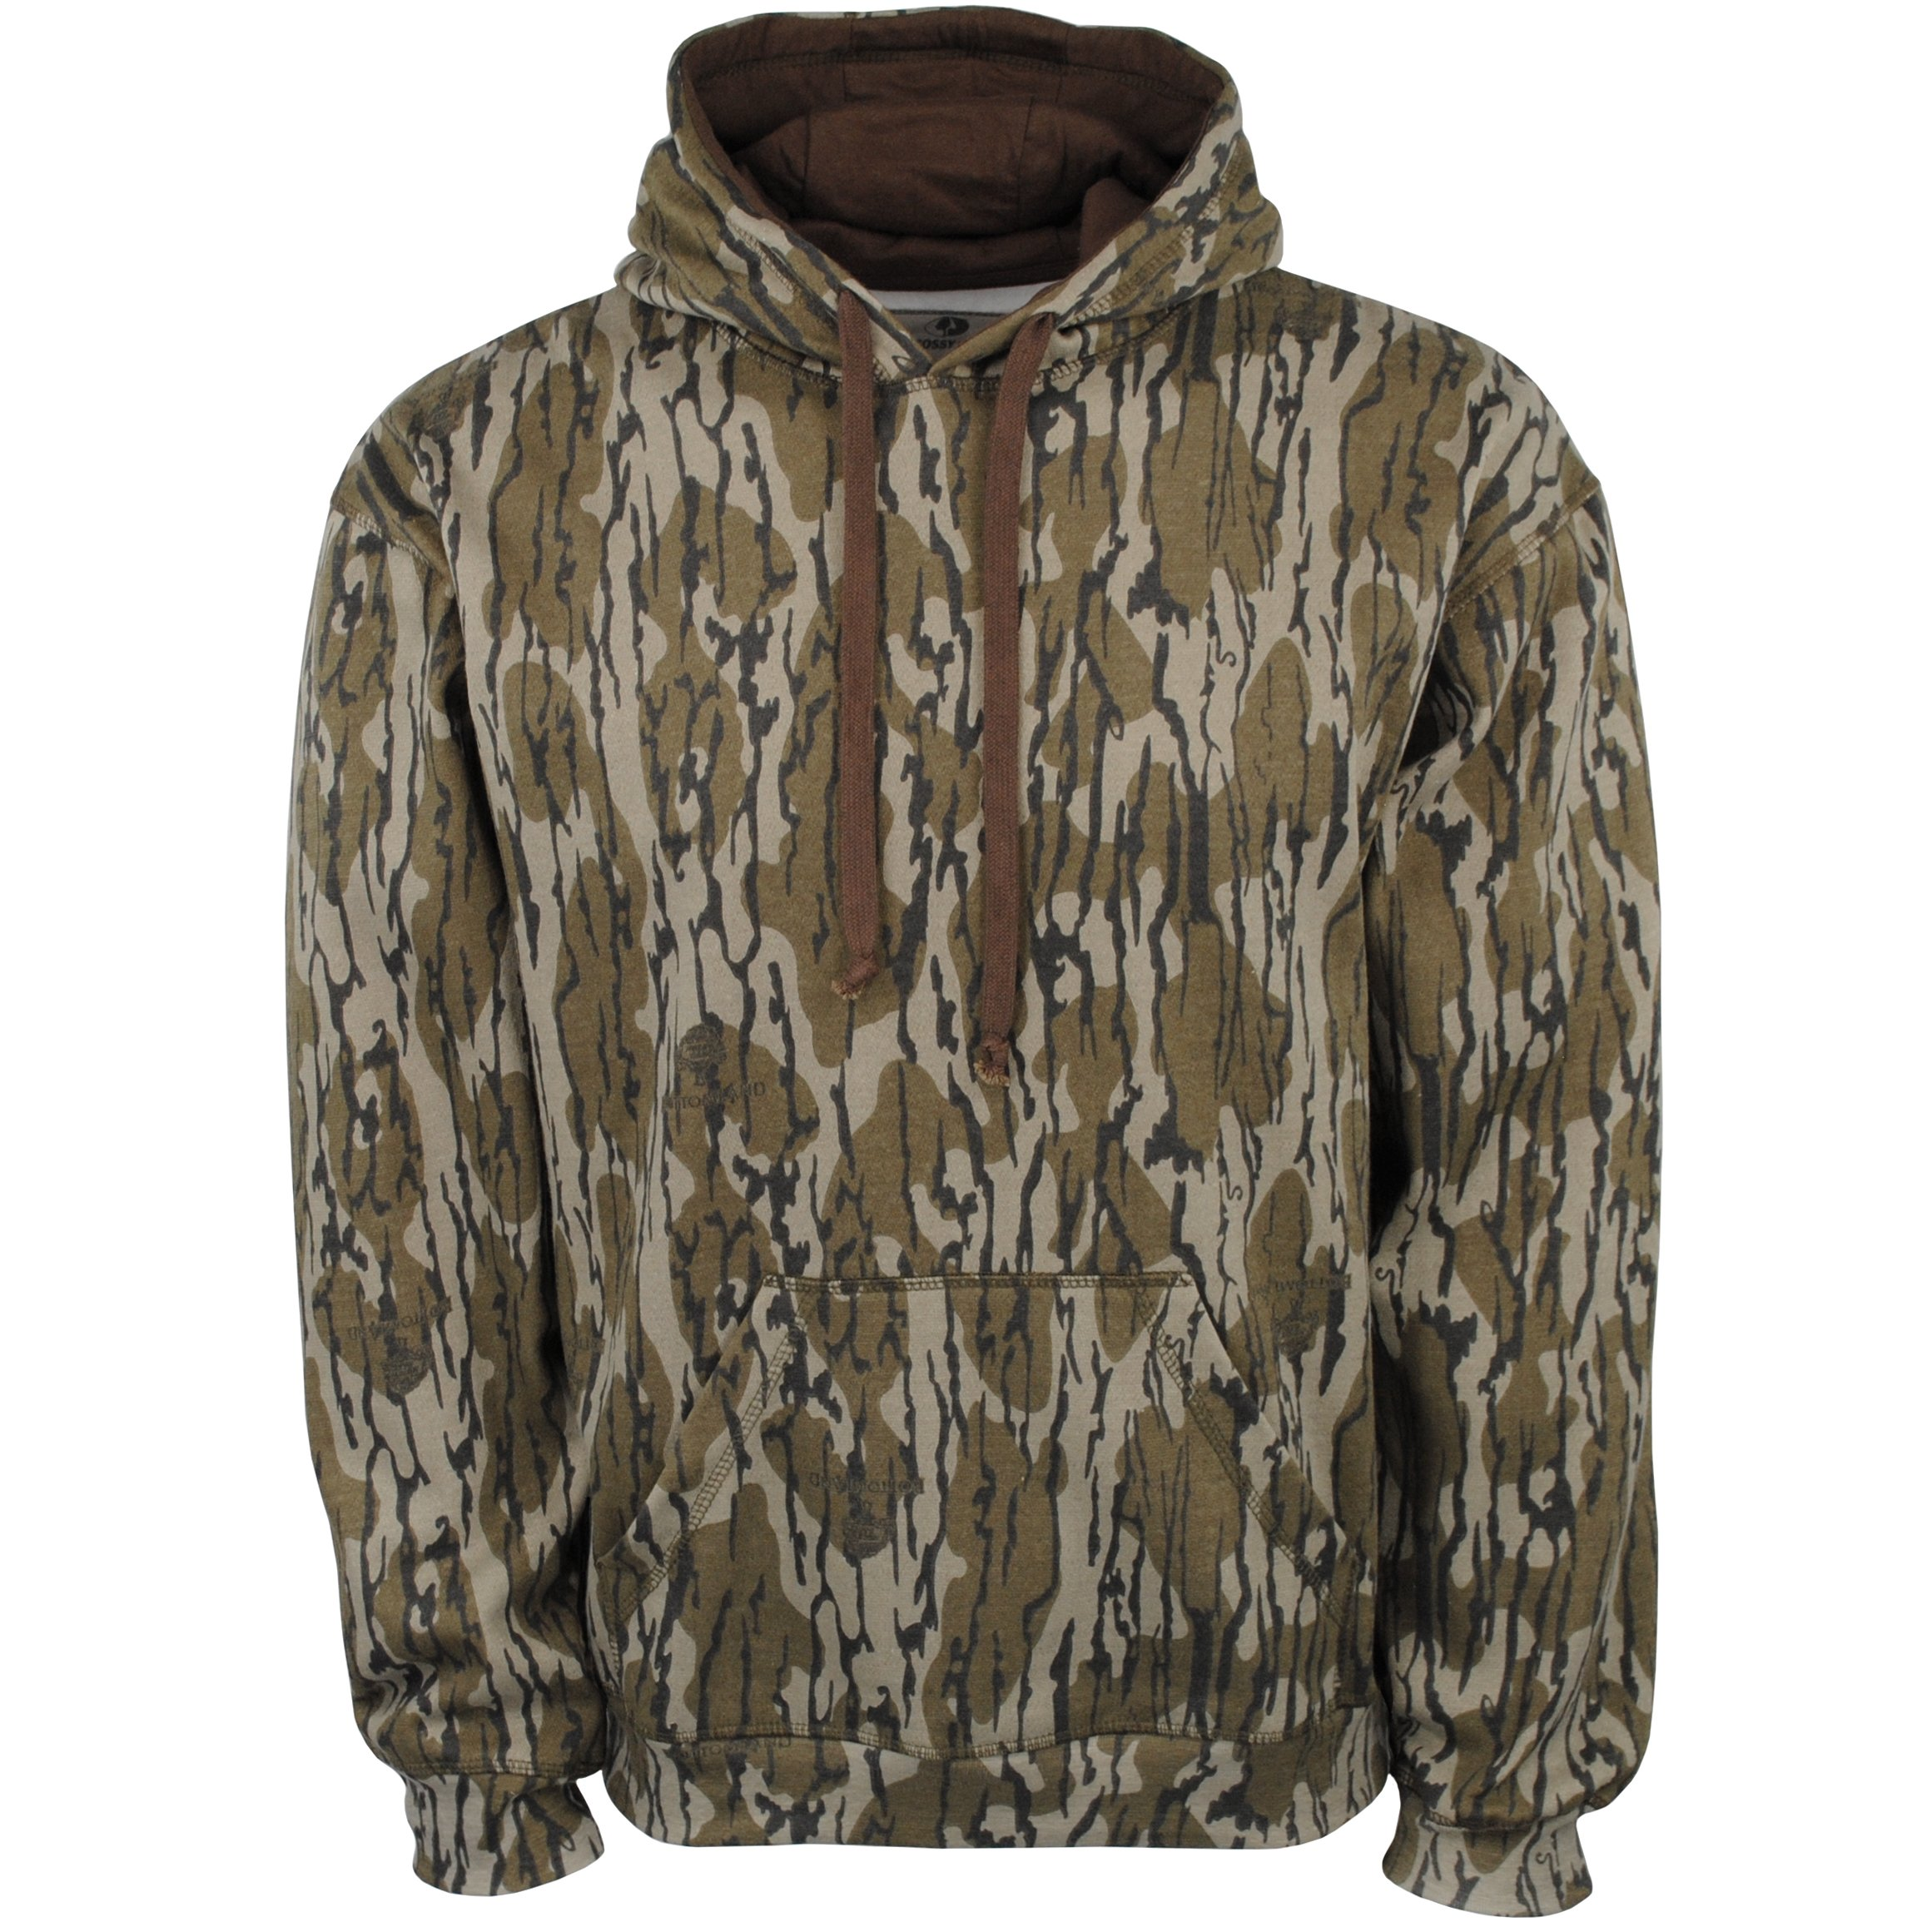 Mossy Oak Men's Vintage Camo Hunt Hoodie, Original Bottomland, Small by Mossy Oak